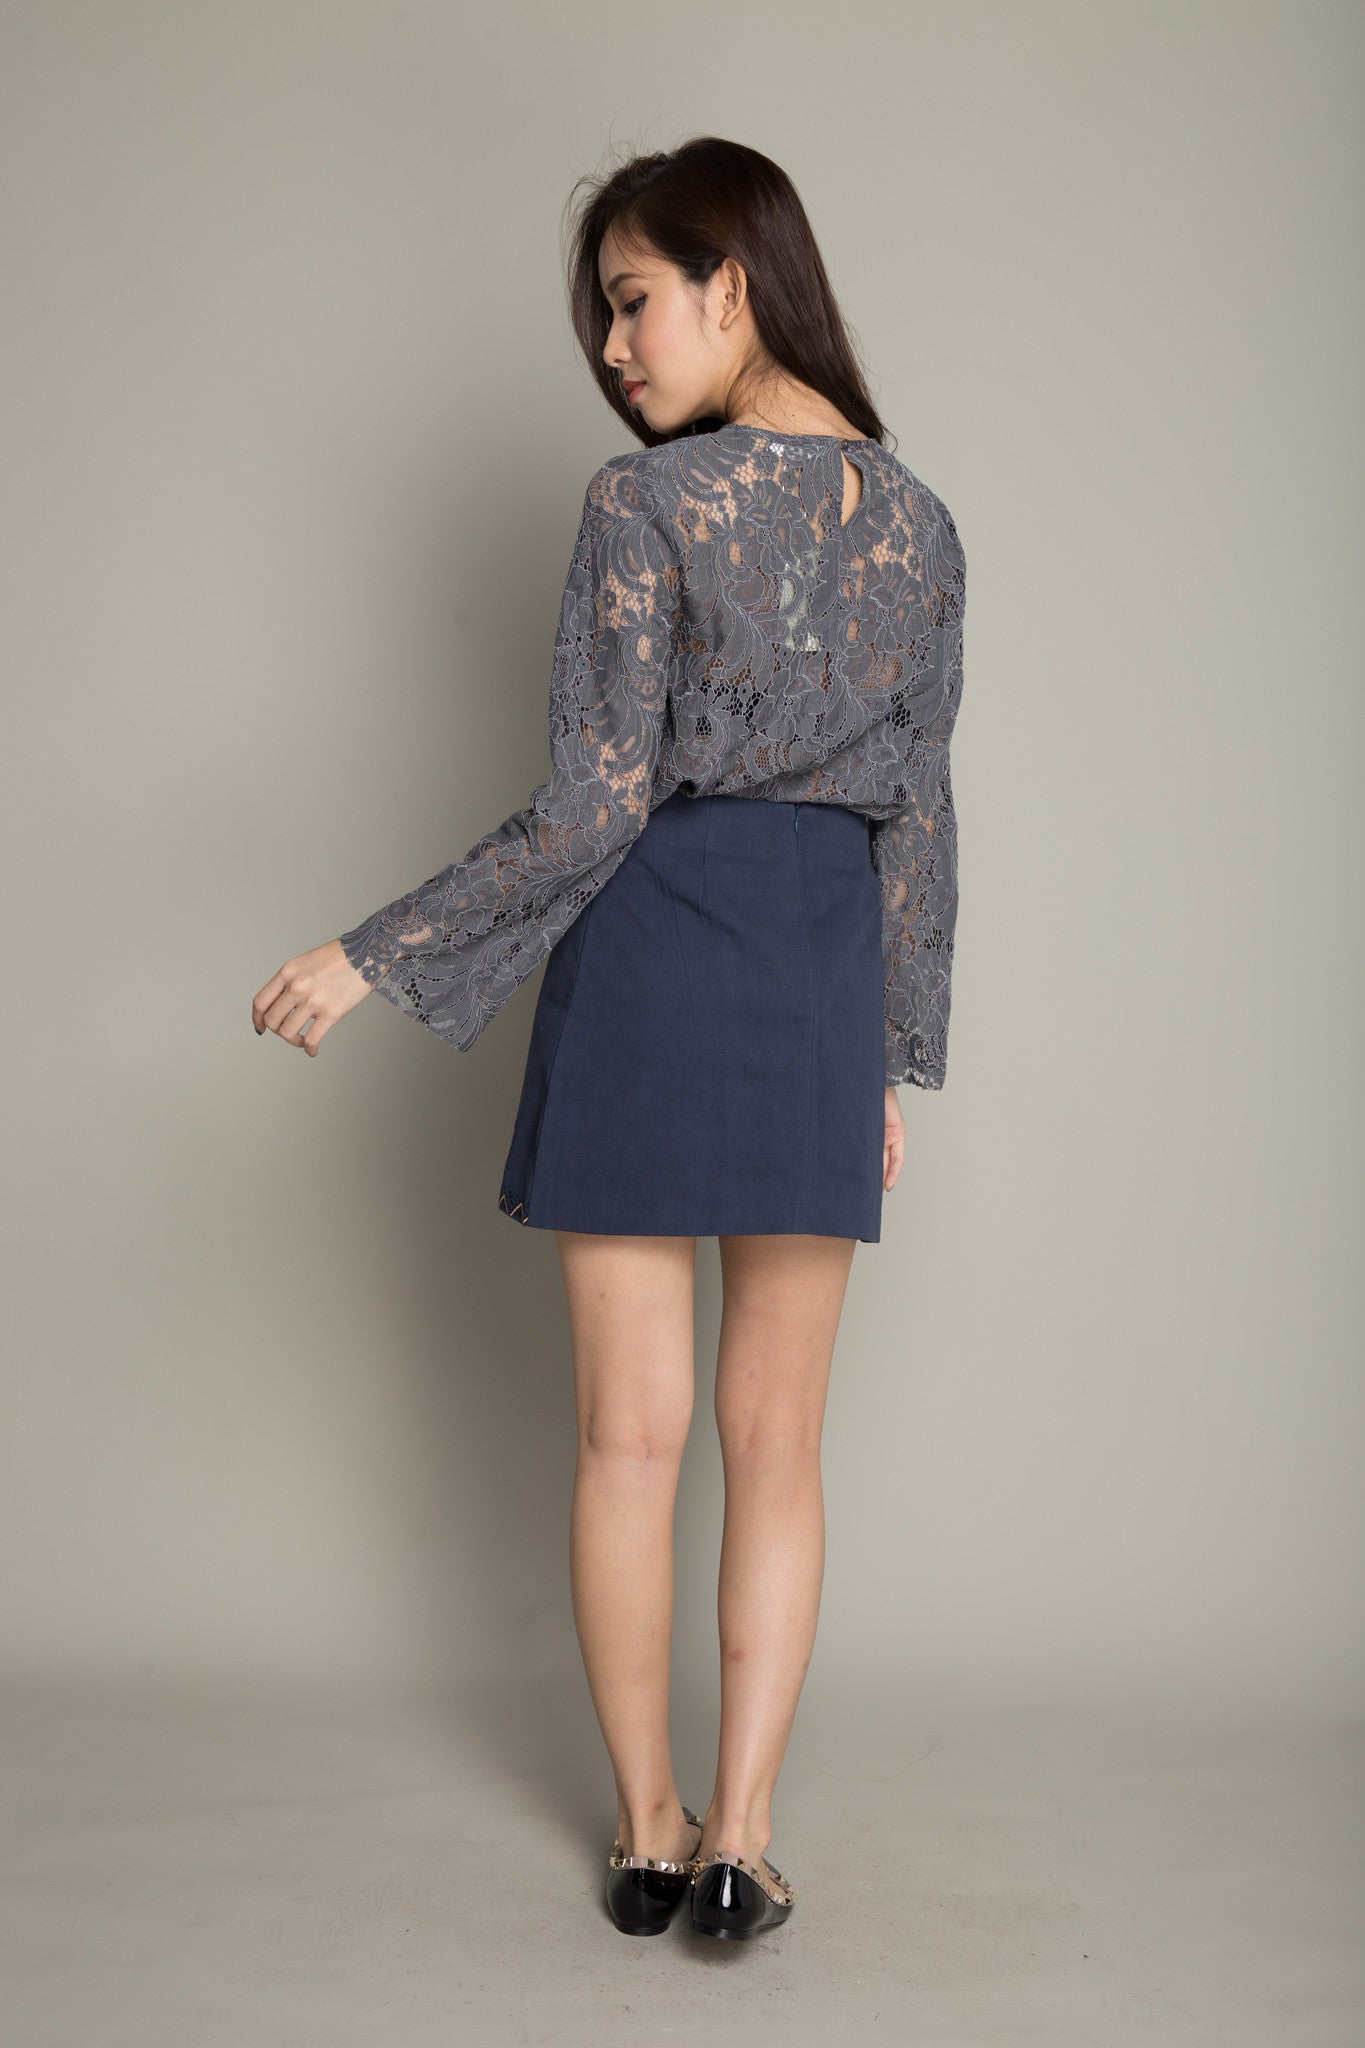 Floral Lace Top in Dark Grey